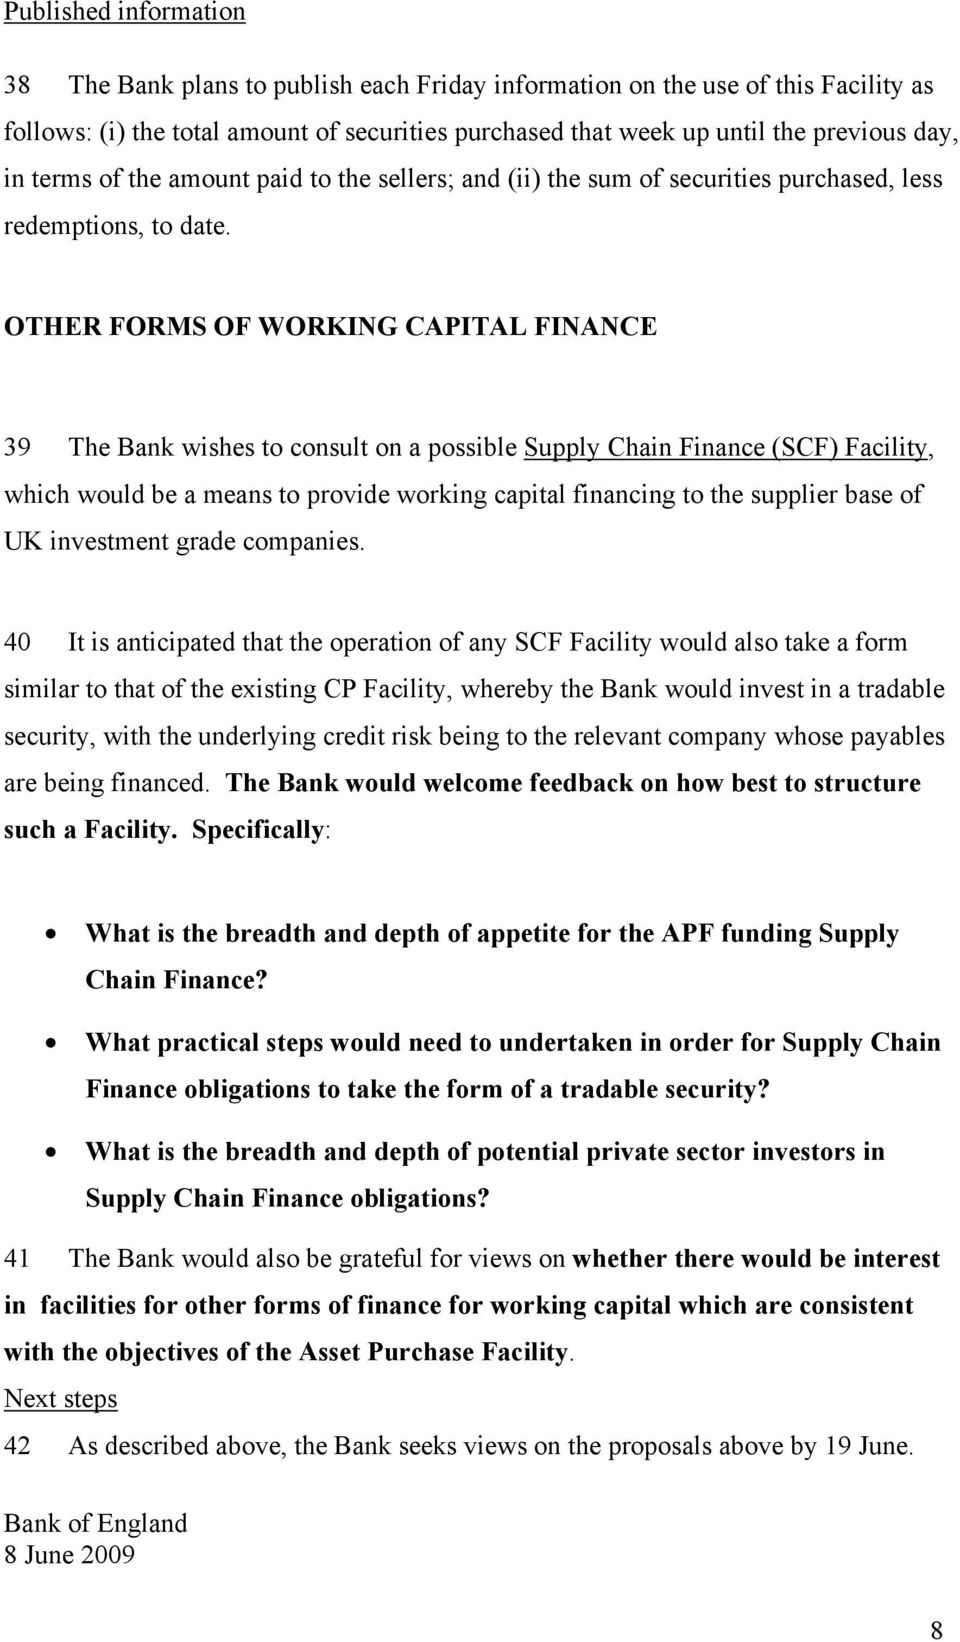 OTHER FORMS OF WORKING CAPITAL FINANCE 39 The Bank wishes to consult on a possible Supply Chain Finance (SCF) Facility, which would be a means to provide working capital financing to the supplier